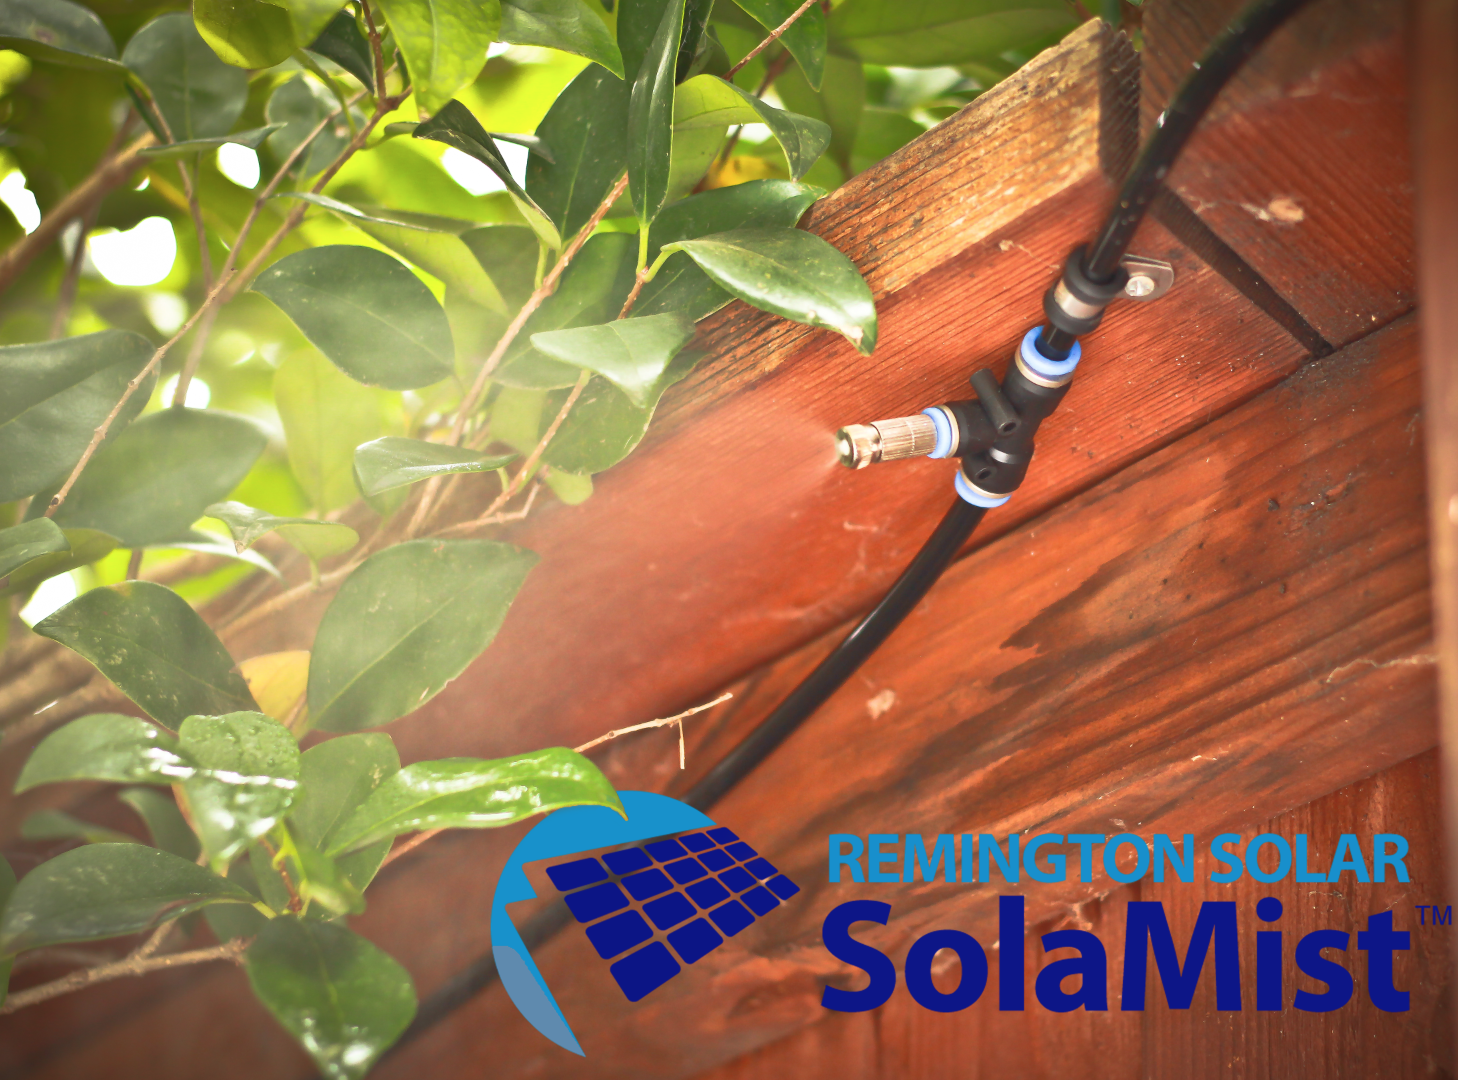 Solamist Mosquito And Insect Misting System Remington Solar